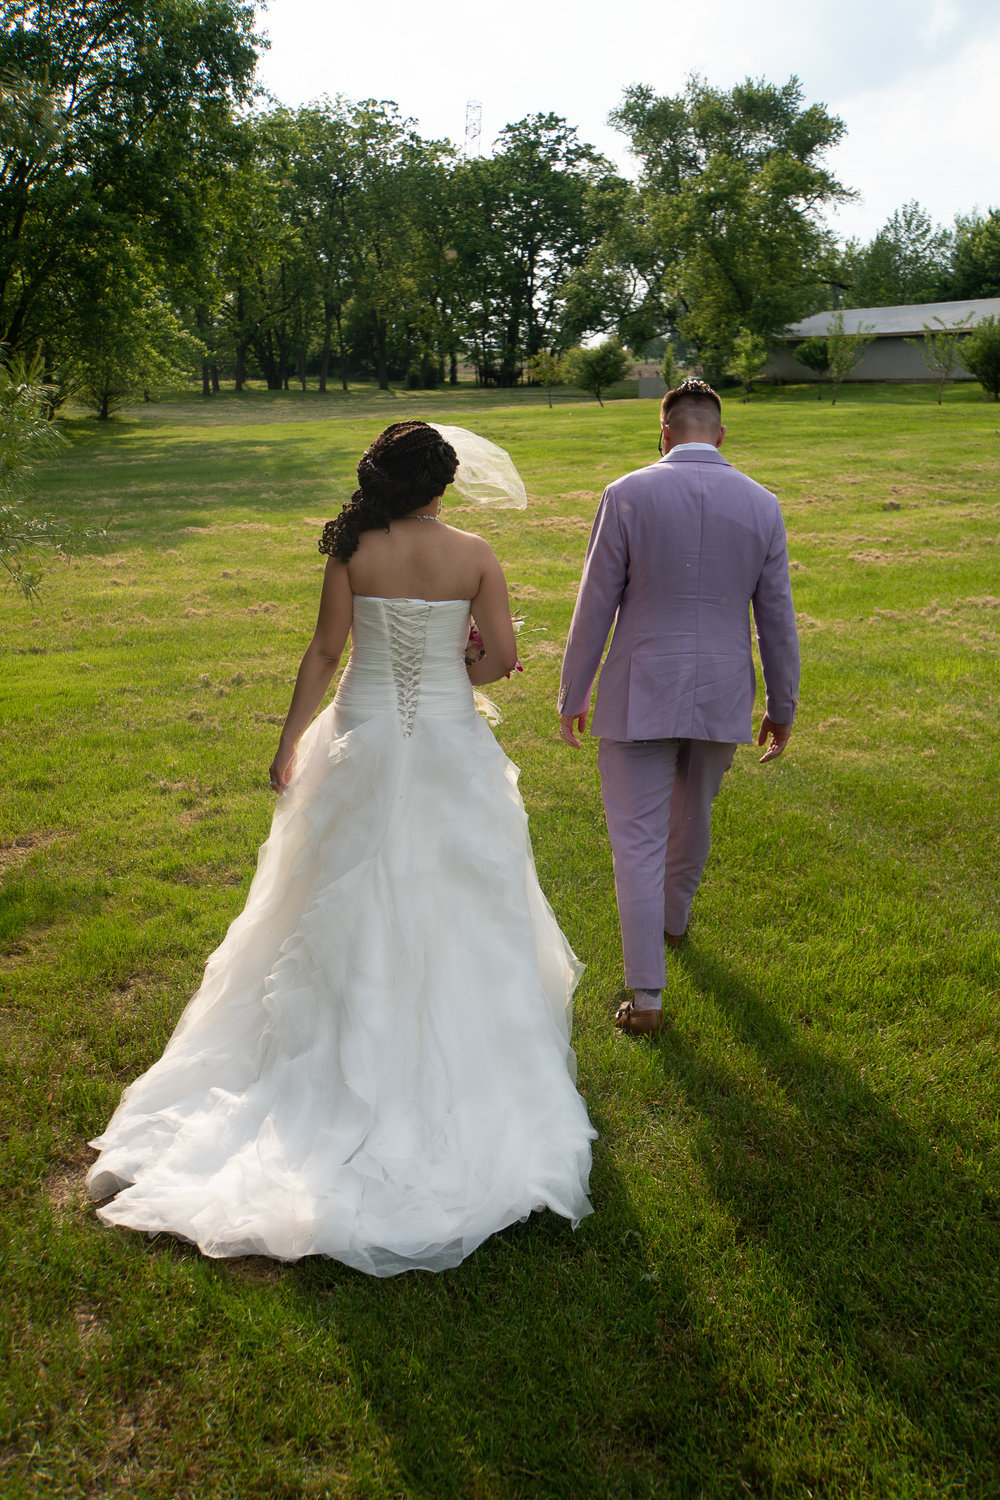 cawedding5star6-5-18-55.jpg